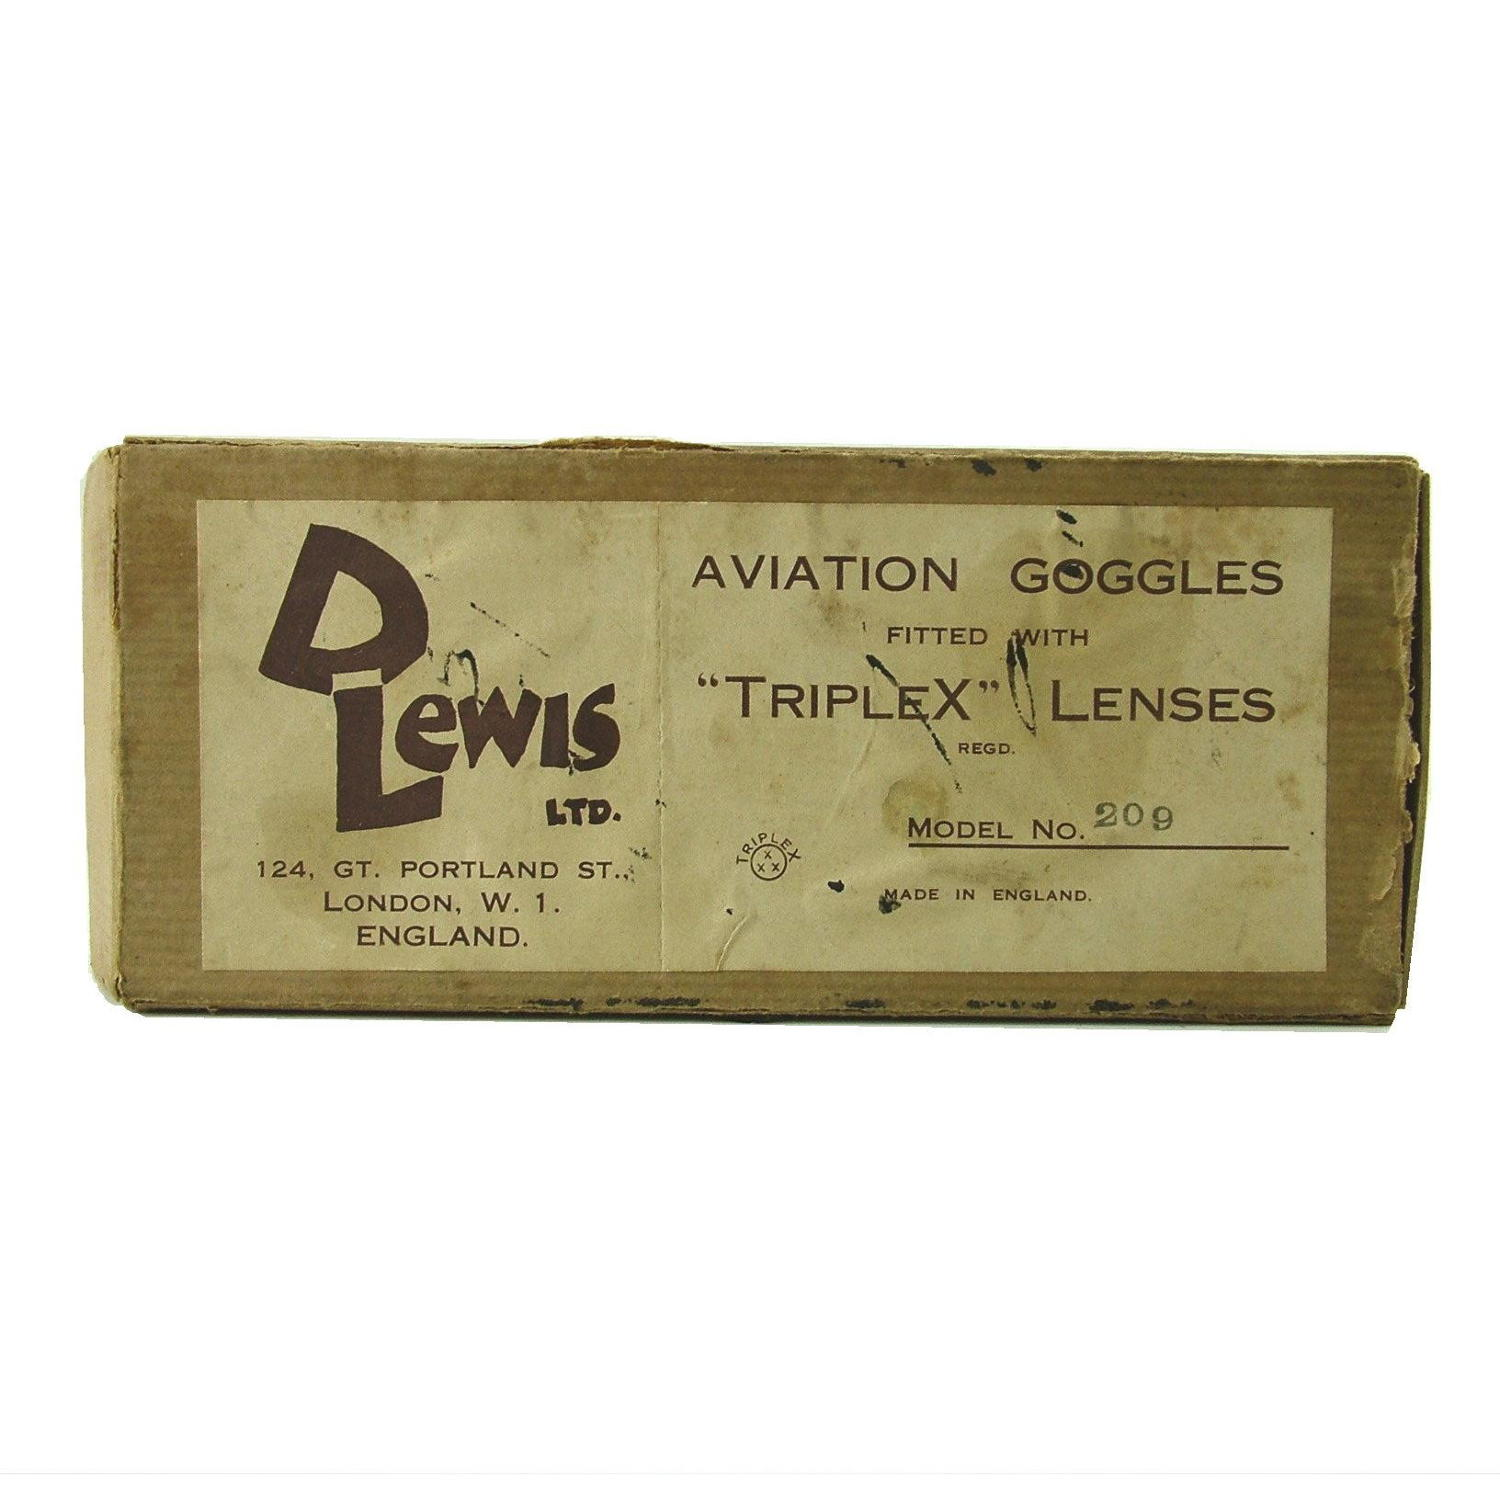 RAF used Lewis aviation goggles, boxed